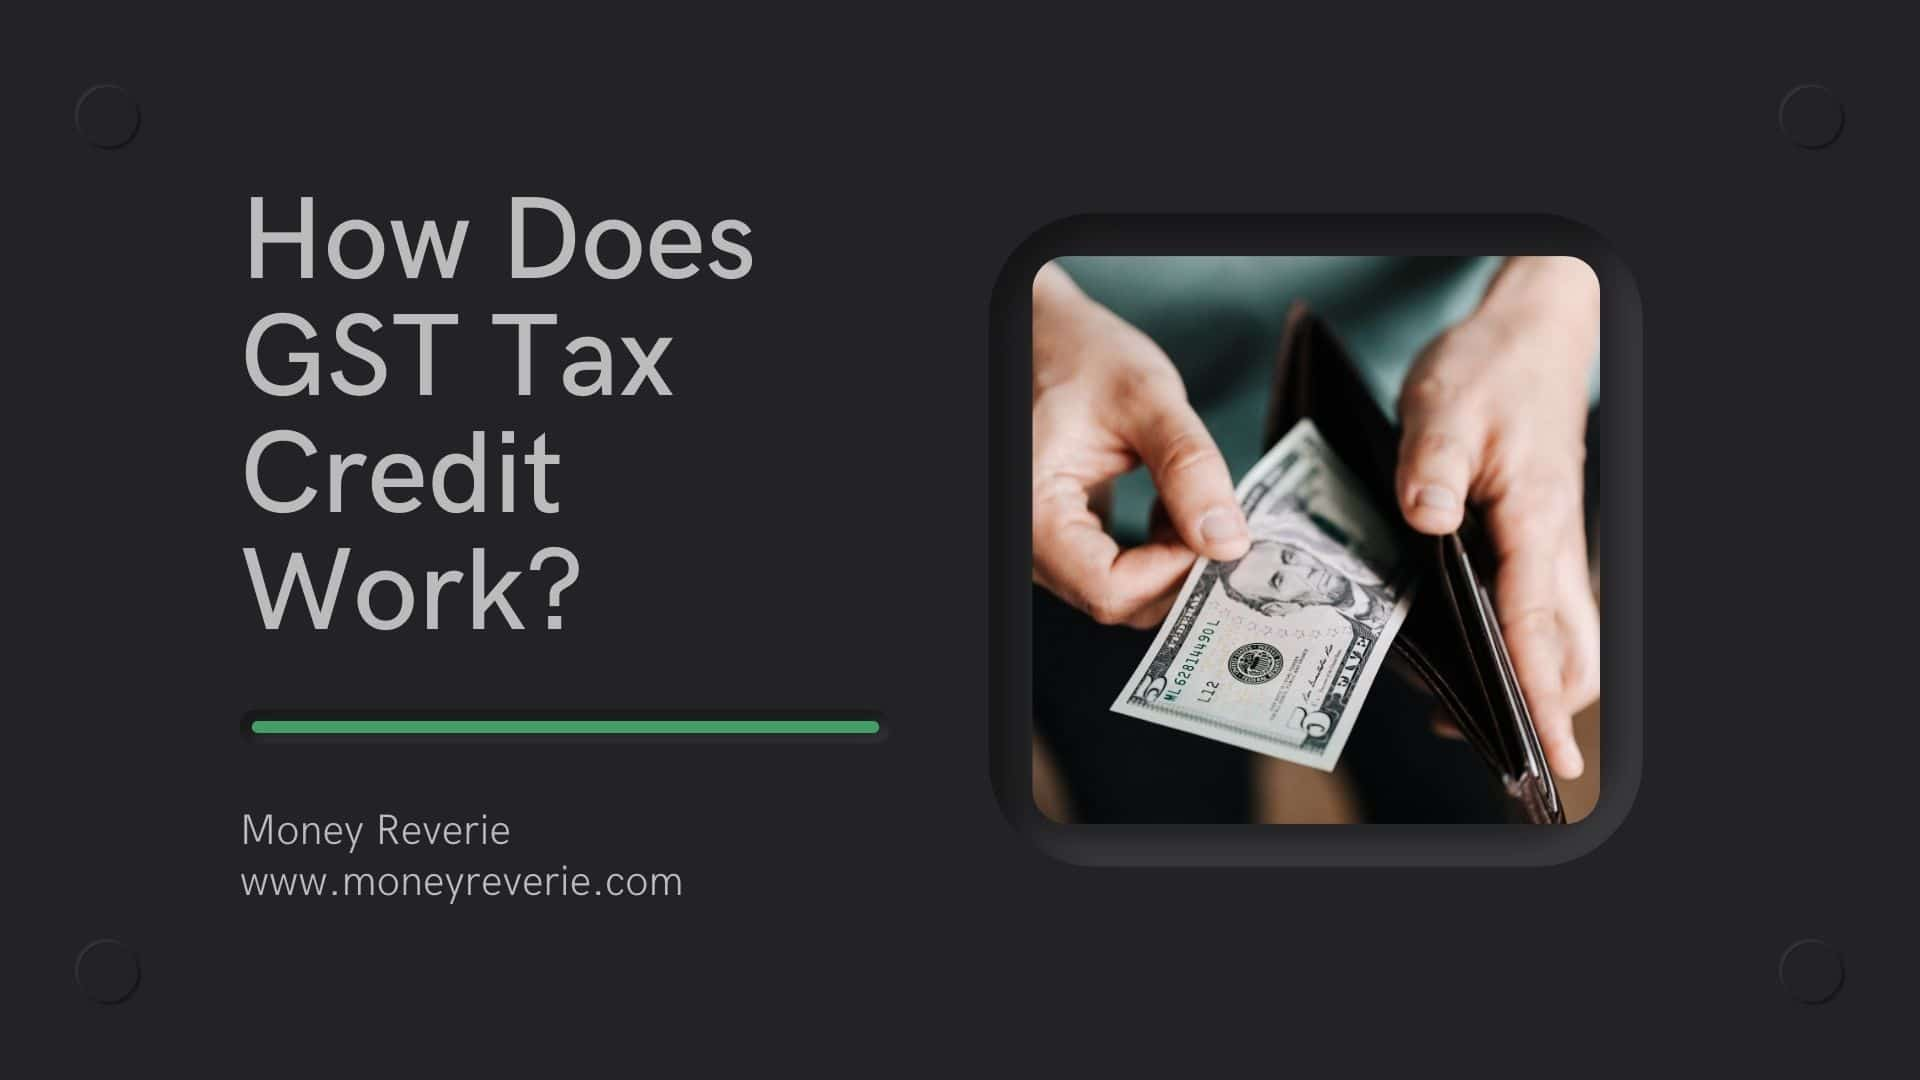 How Does GST Tax Credit Work?